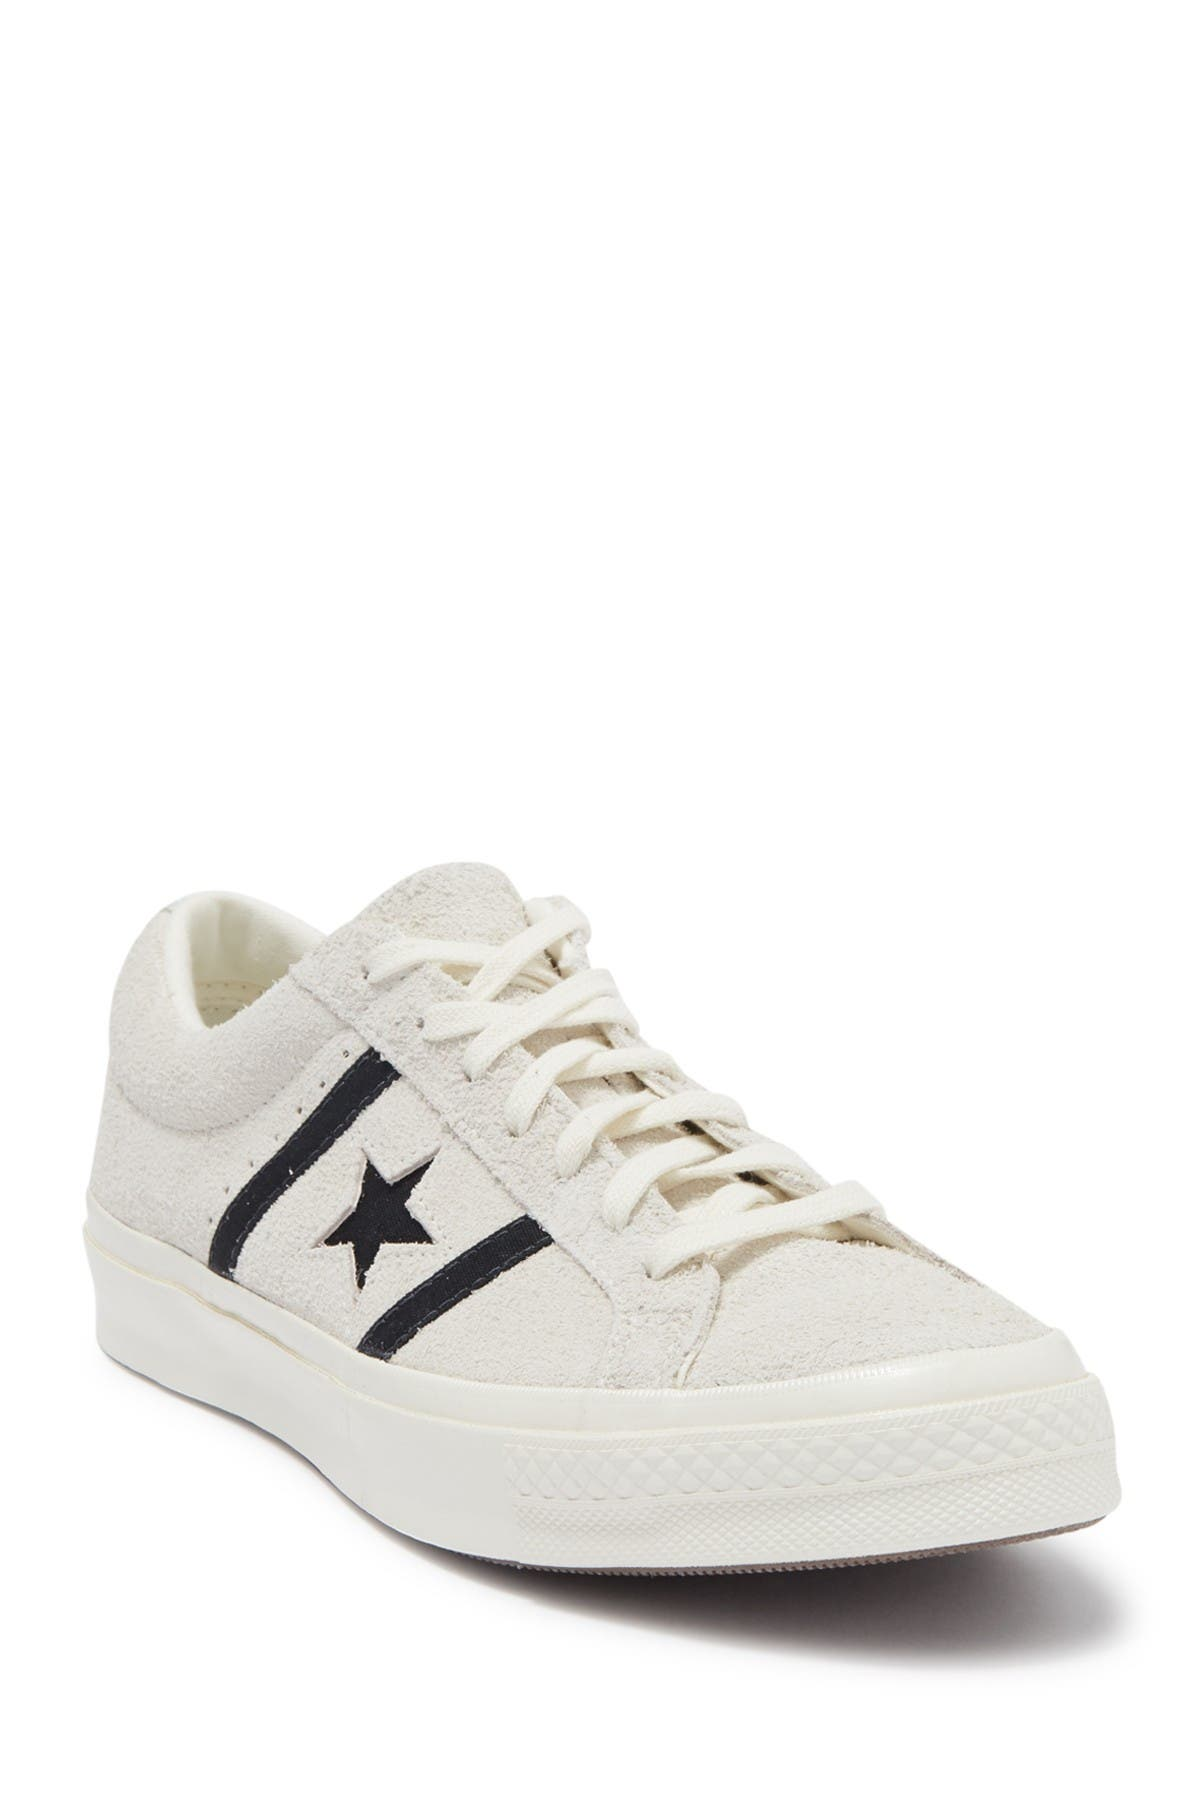 Image of Converse One Star Academy Oxford Suede Sneaker